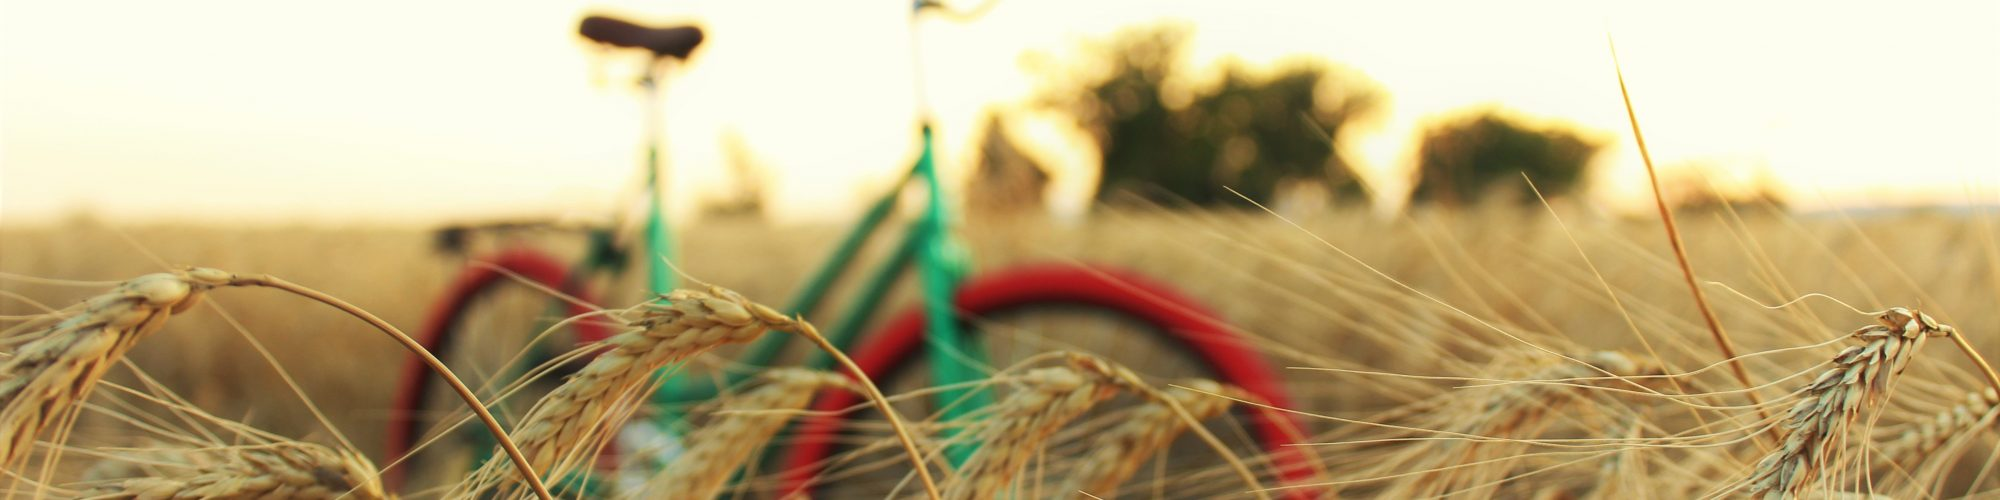 agriculture-barley-bicycle-1595440